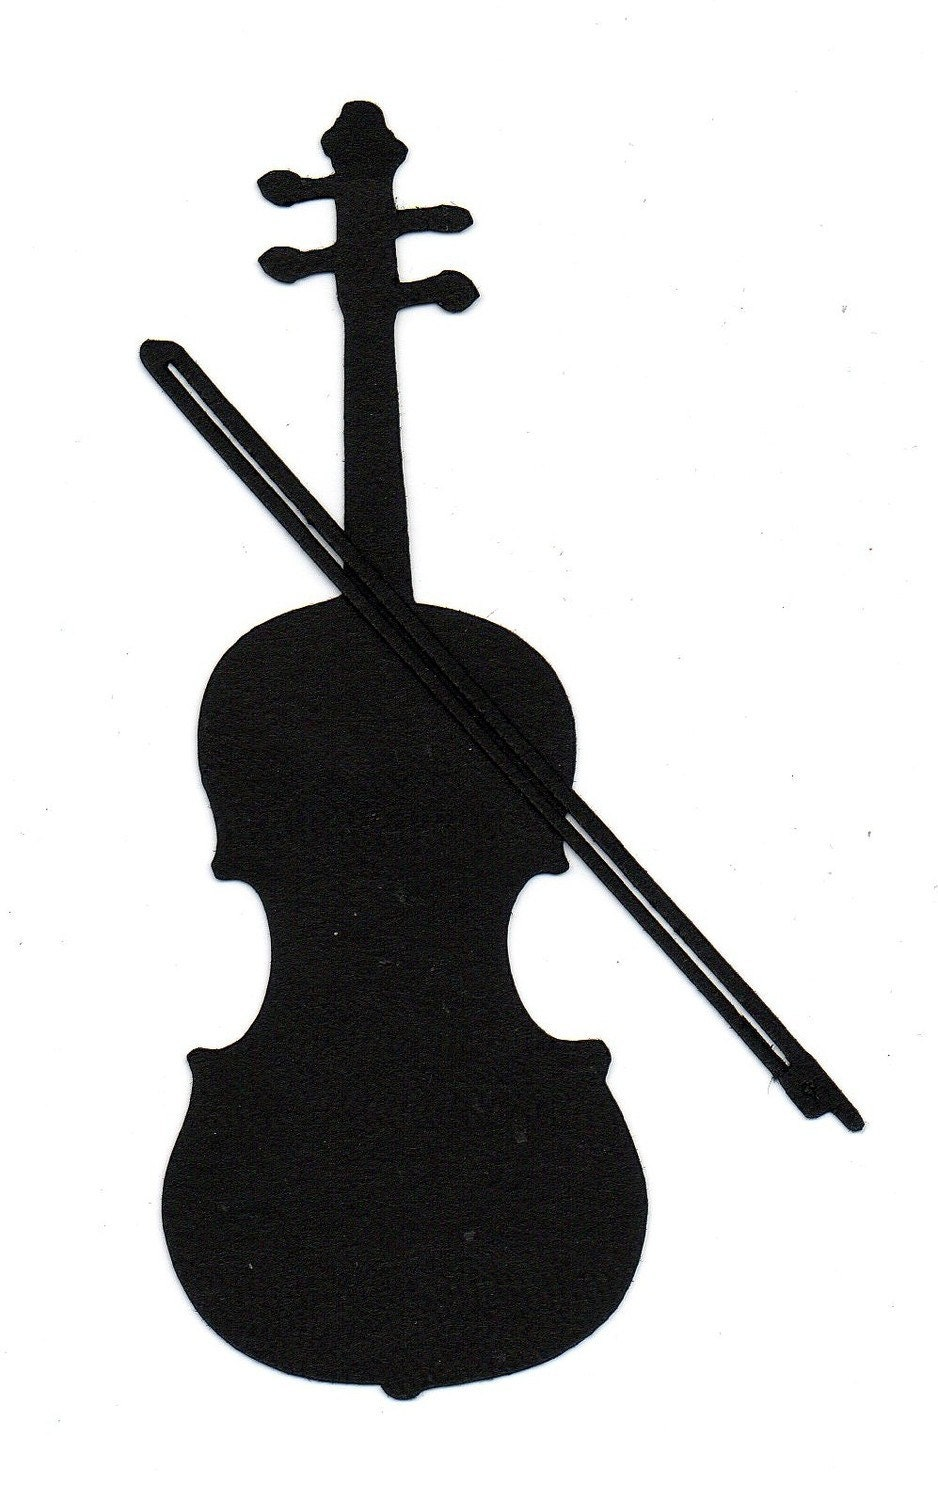 Violin or Cello Silhouette die cut for by simplymadescrapbooks